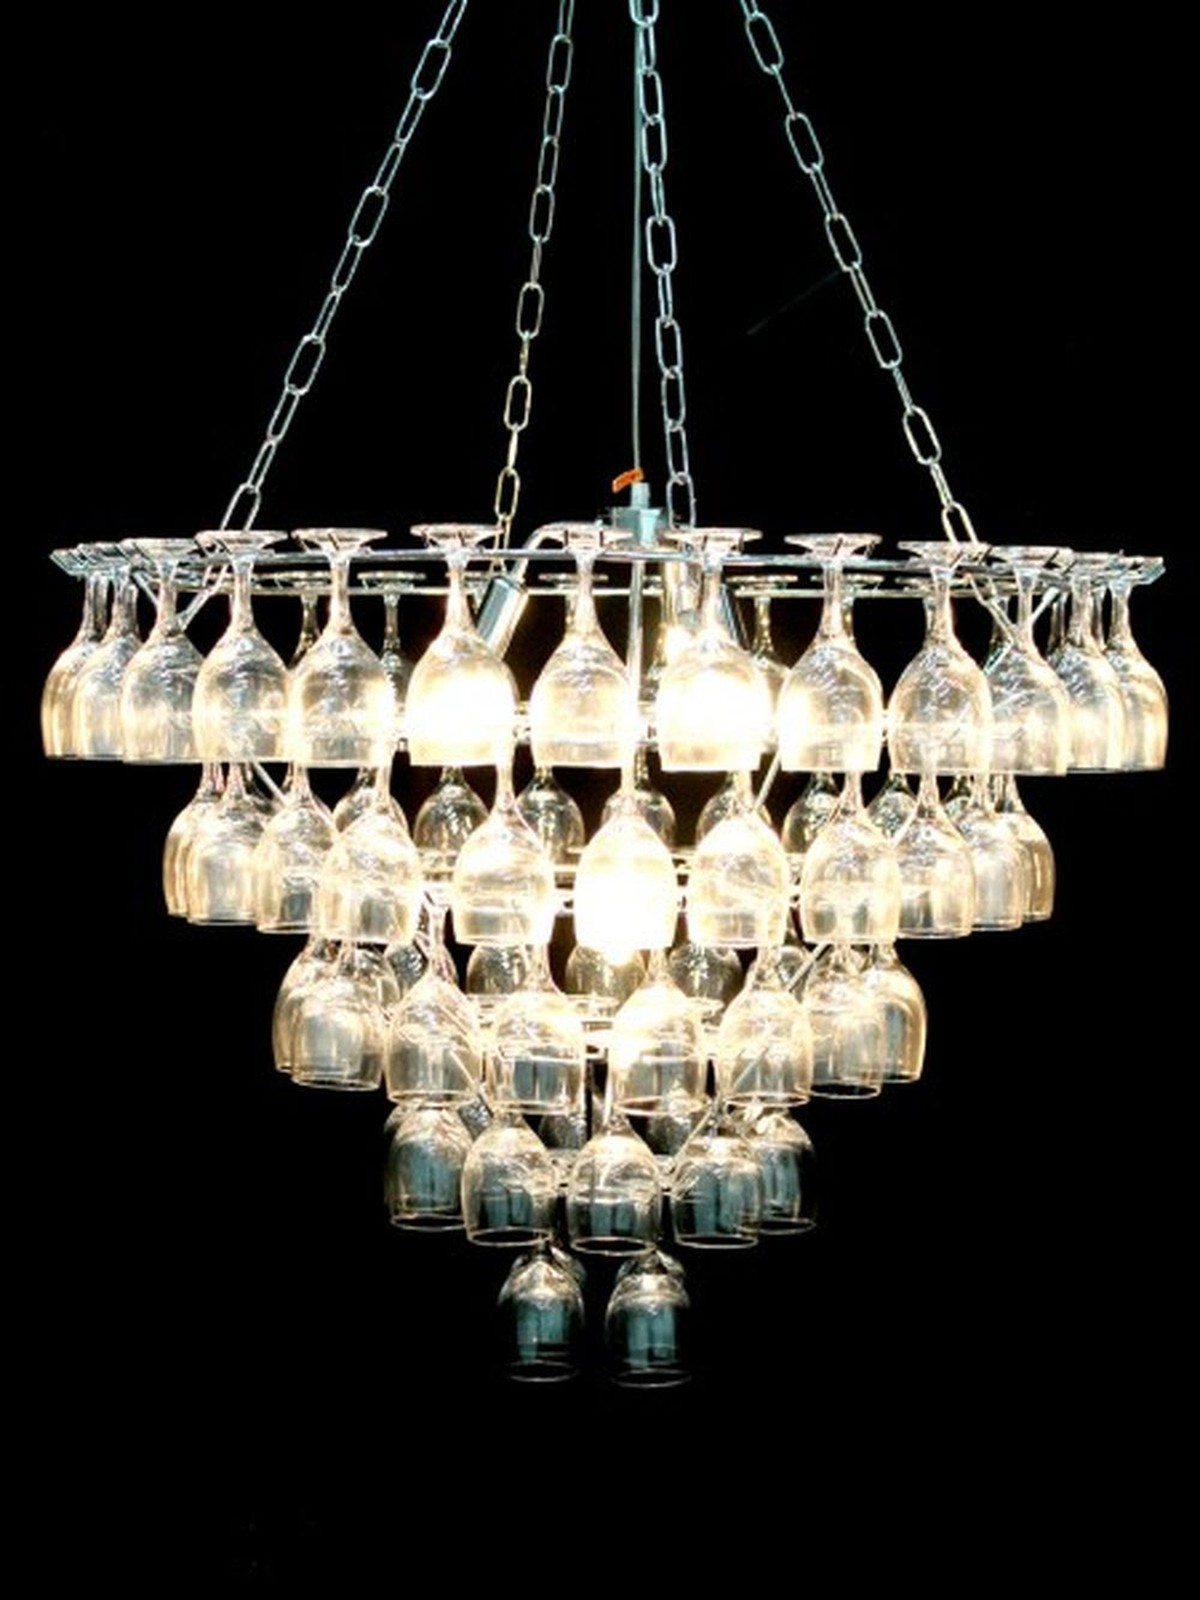 Champagne Glass Chandelier light collections Light Ideas